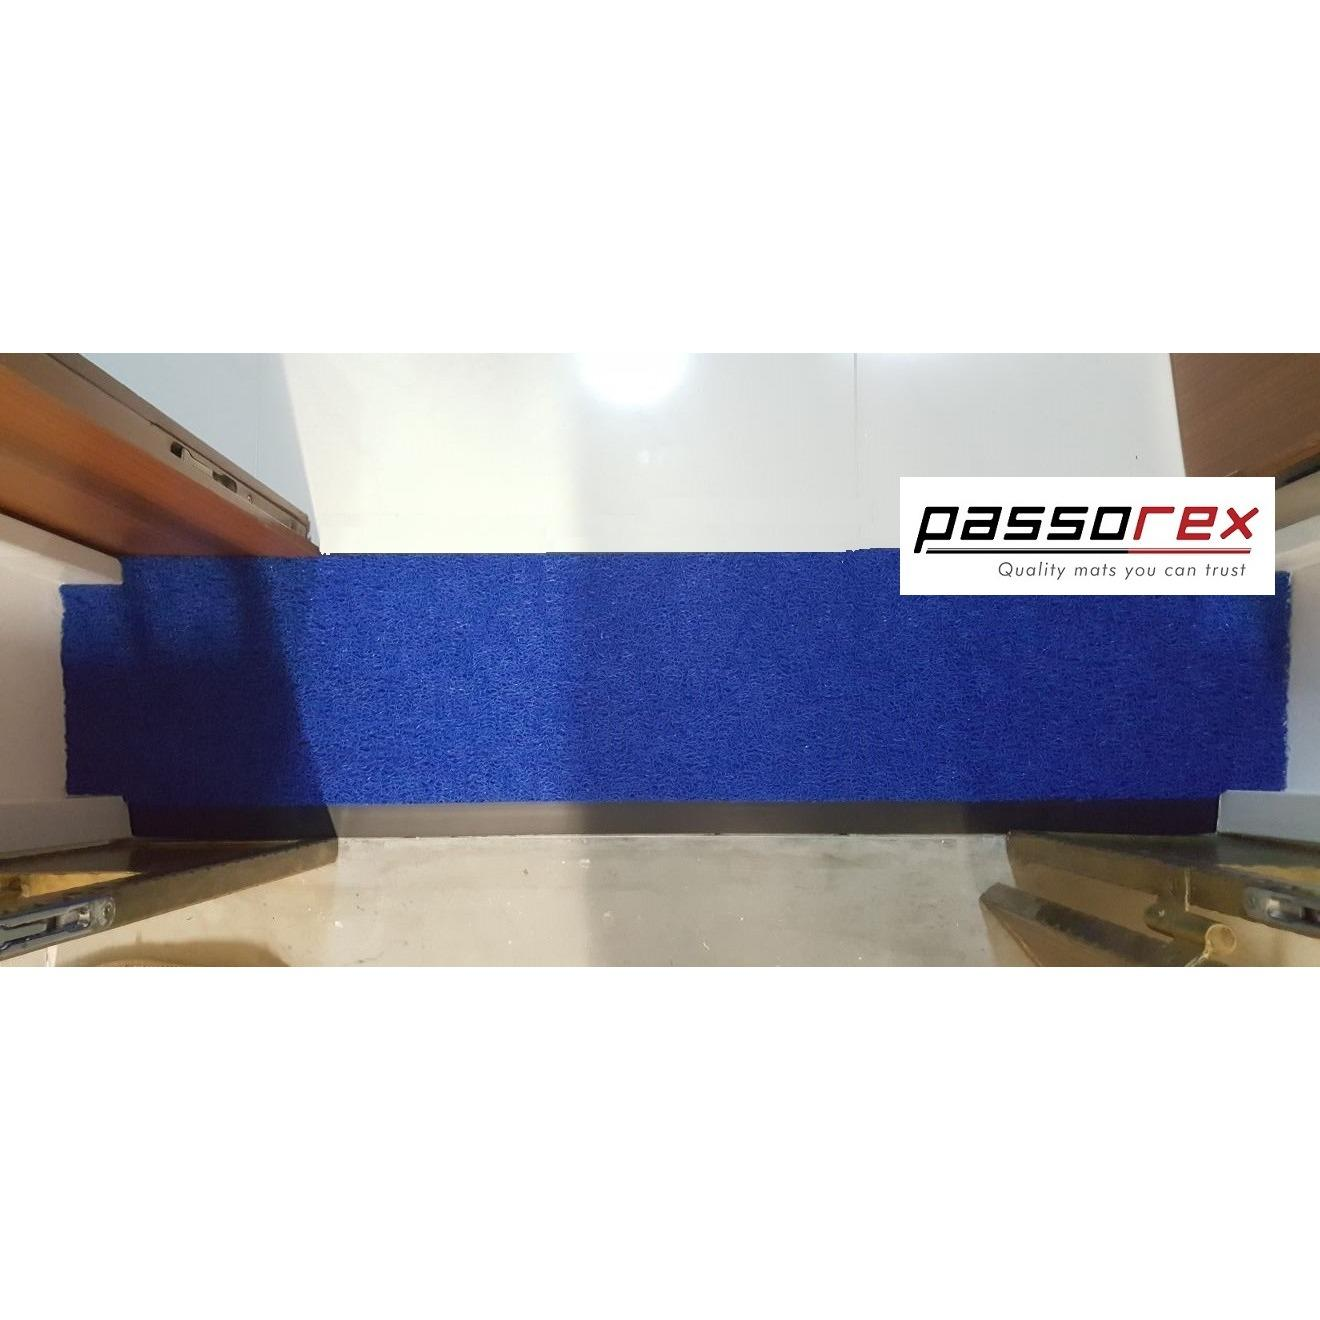 Cheapest Passorex Door Gap Coil Mat With Rubber Edge Prxdgme1202913 Blue